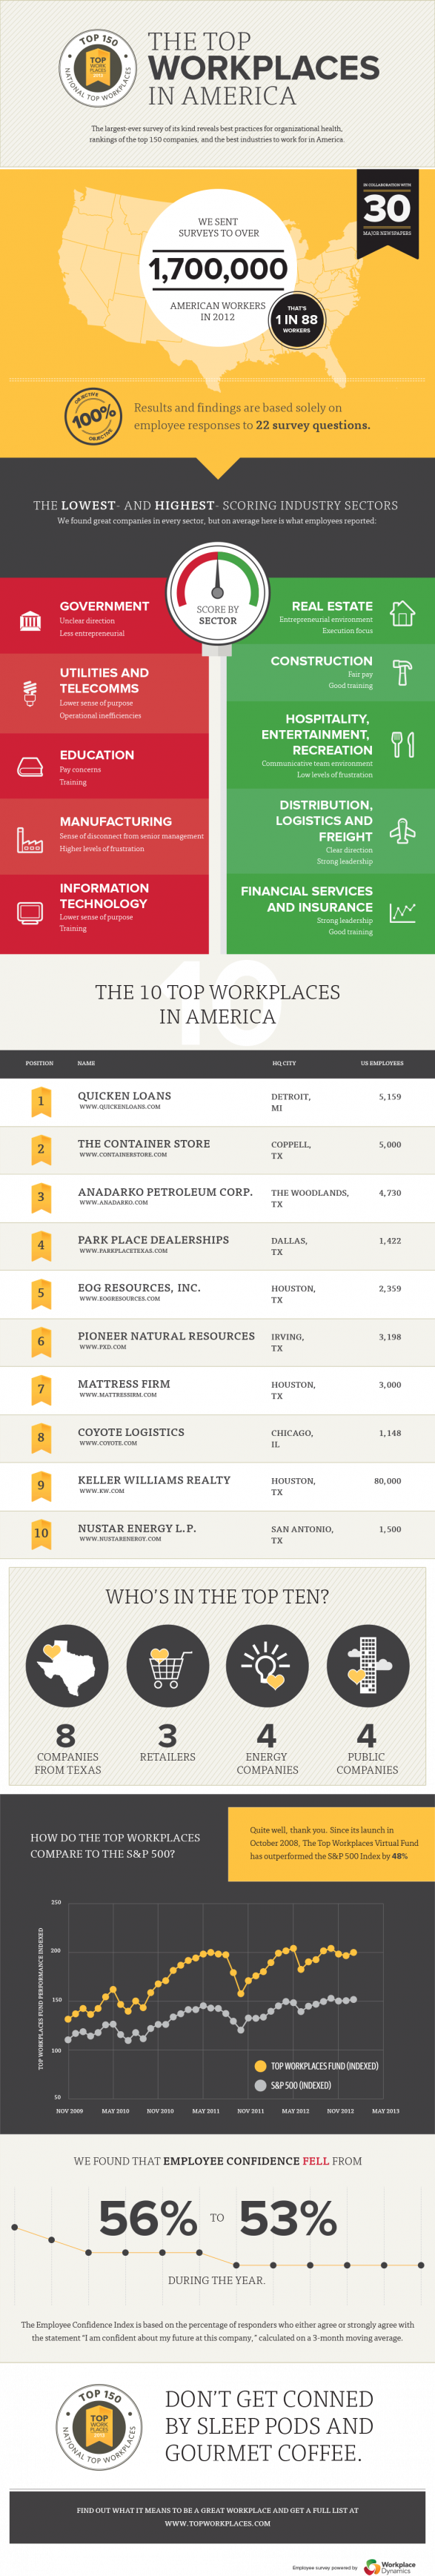 The Top Workplaces in America